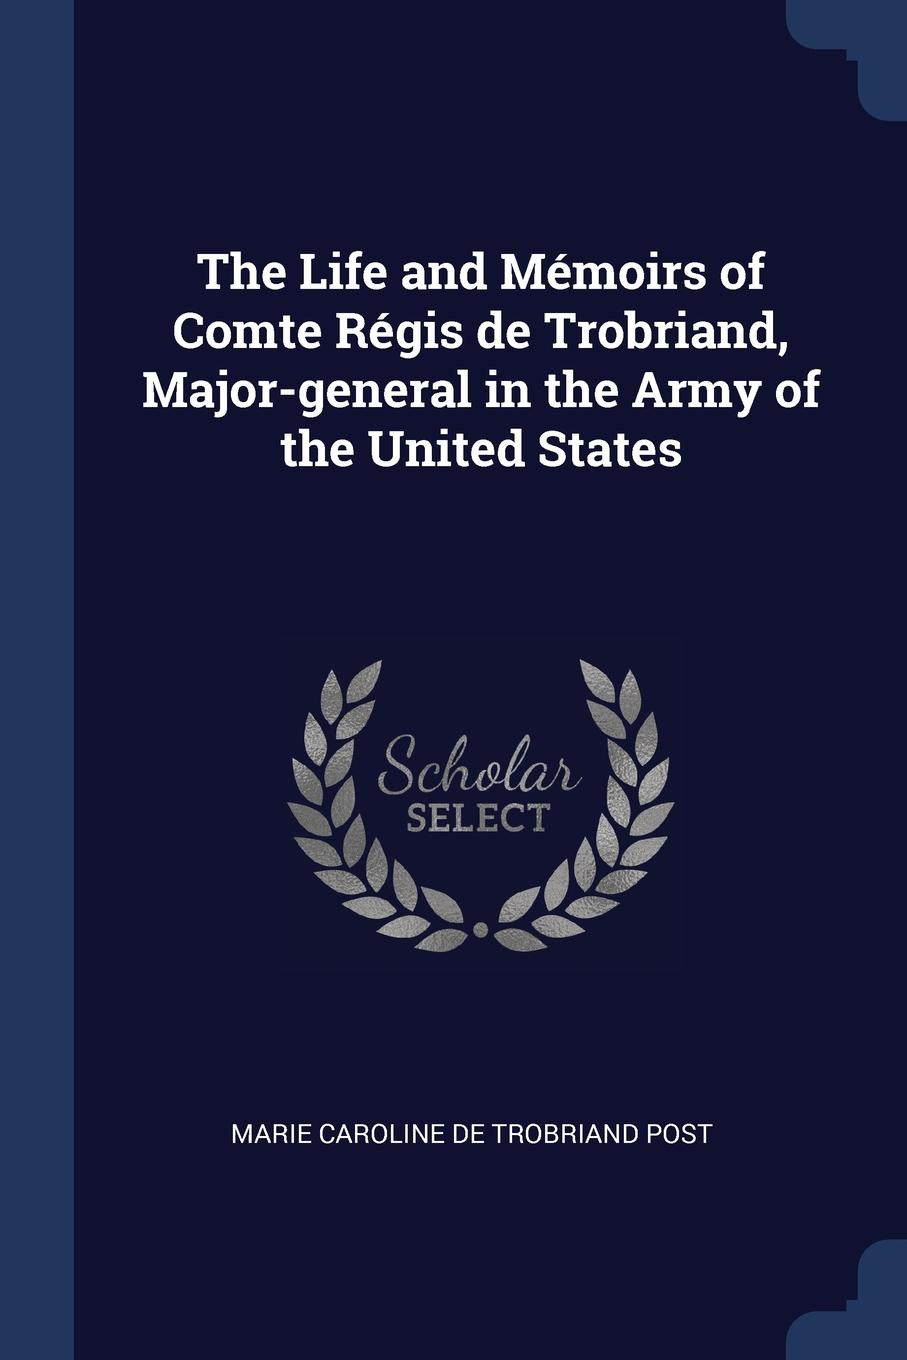 The Life and Memoirs of Comte Regis de Trobriand, Major-general in the Army of the United States. Marie Caroline de Trobriand Post